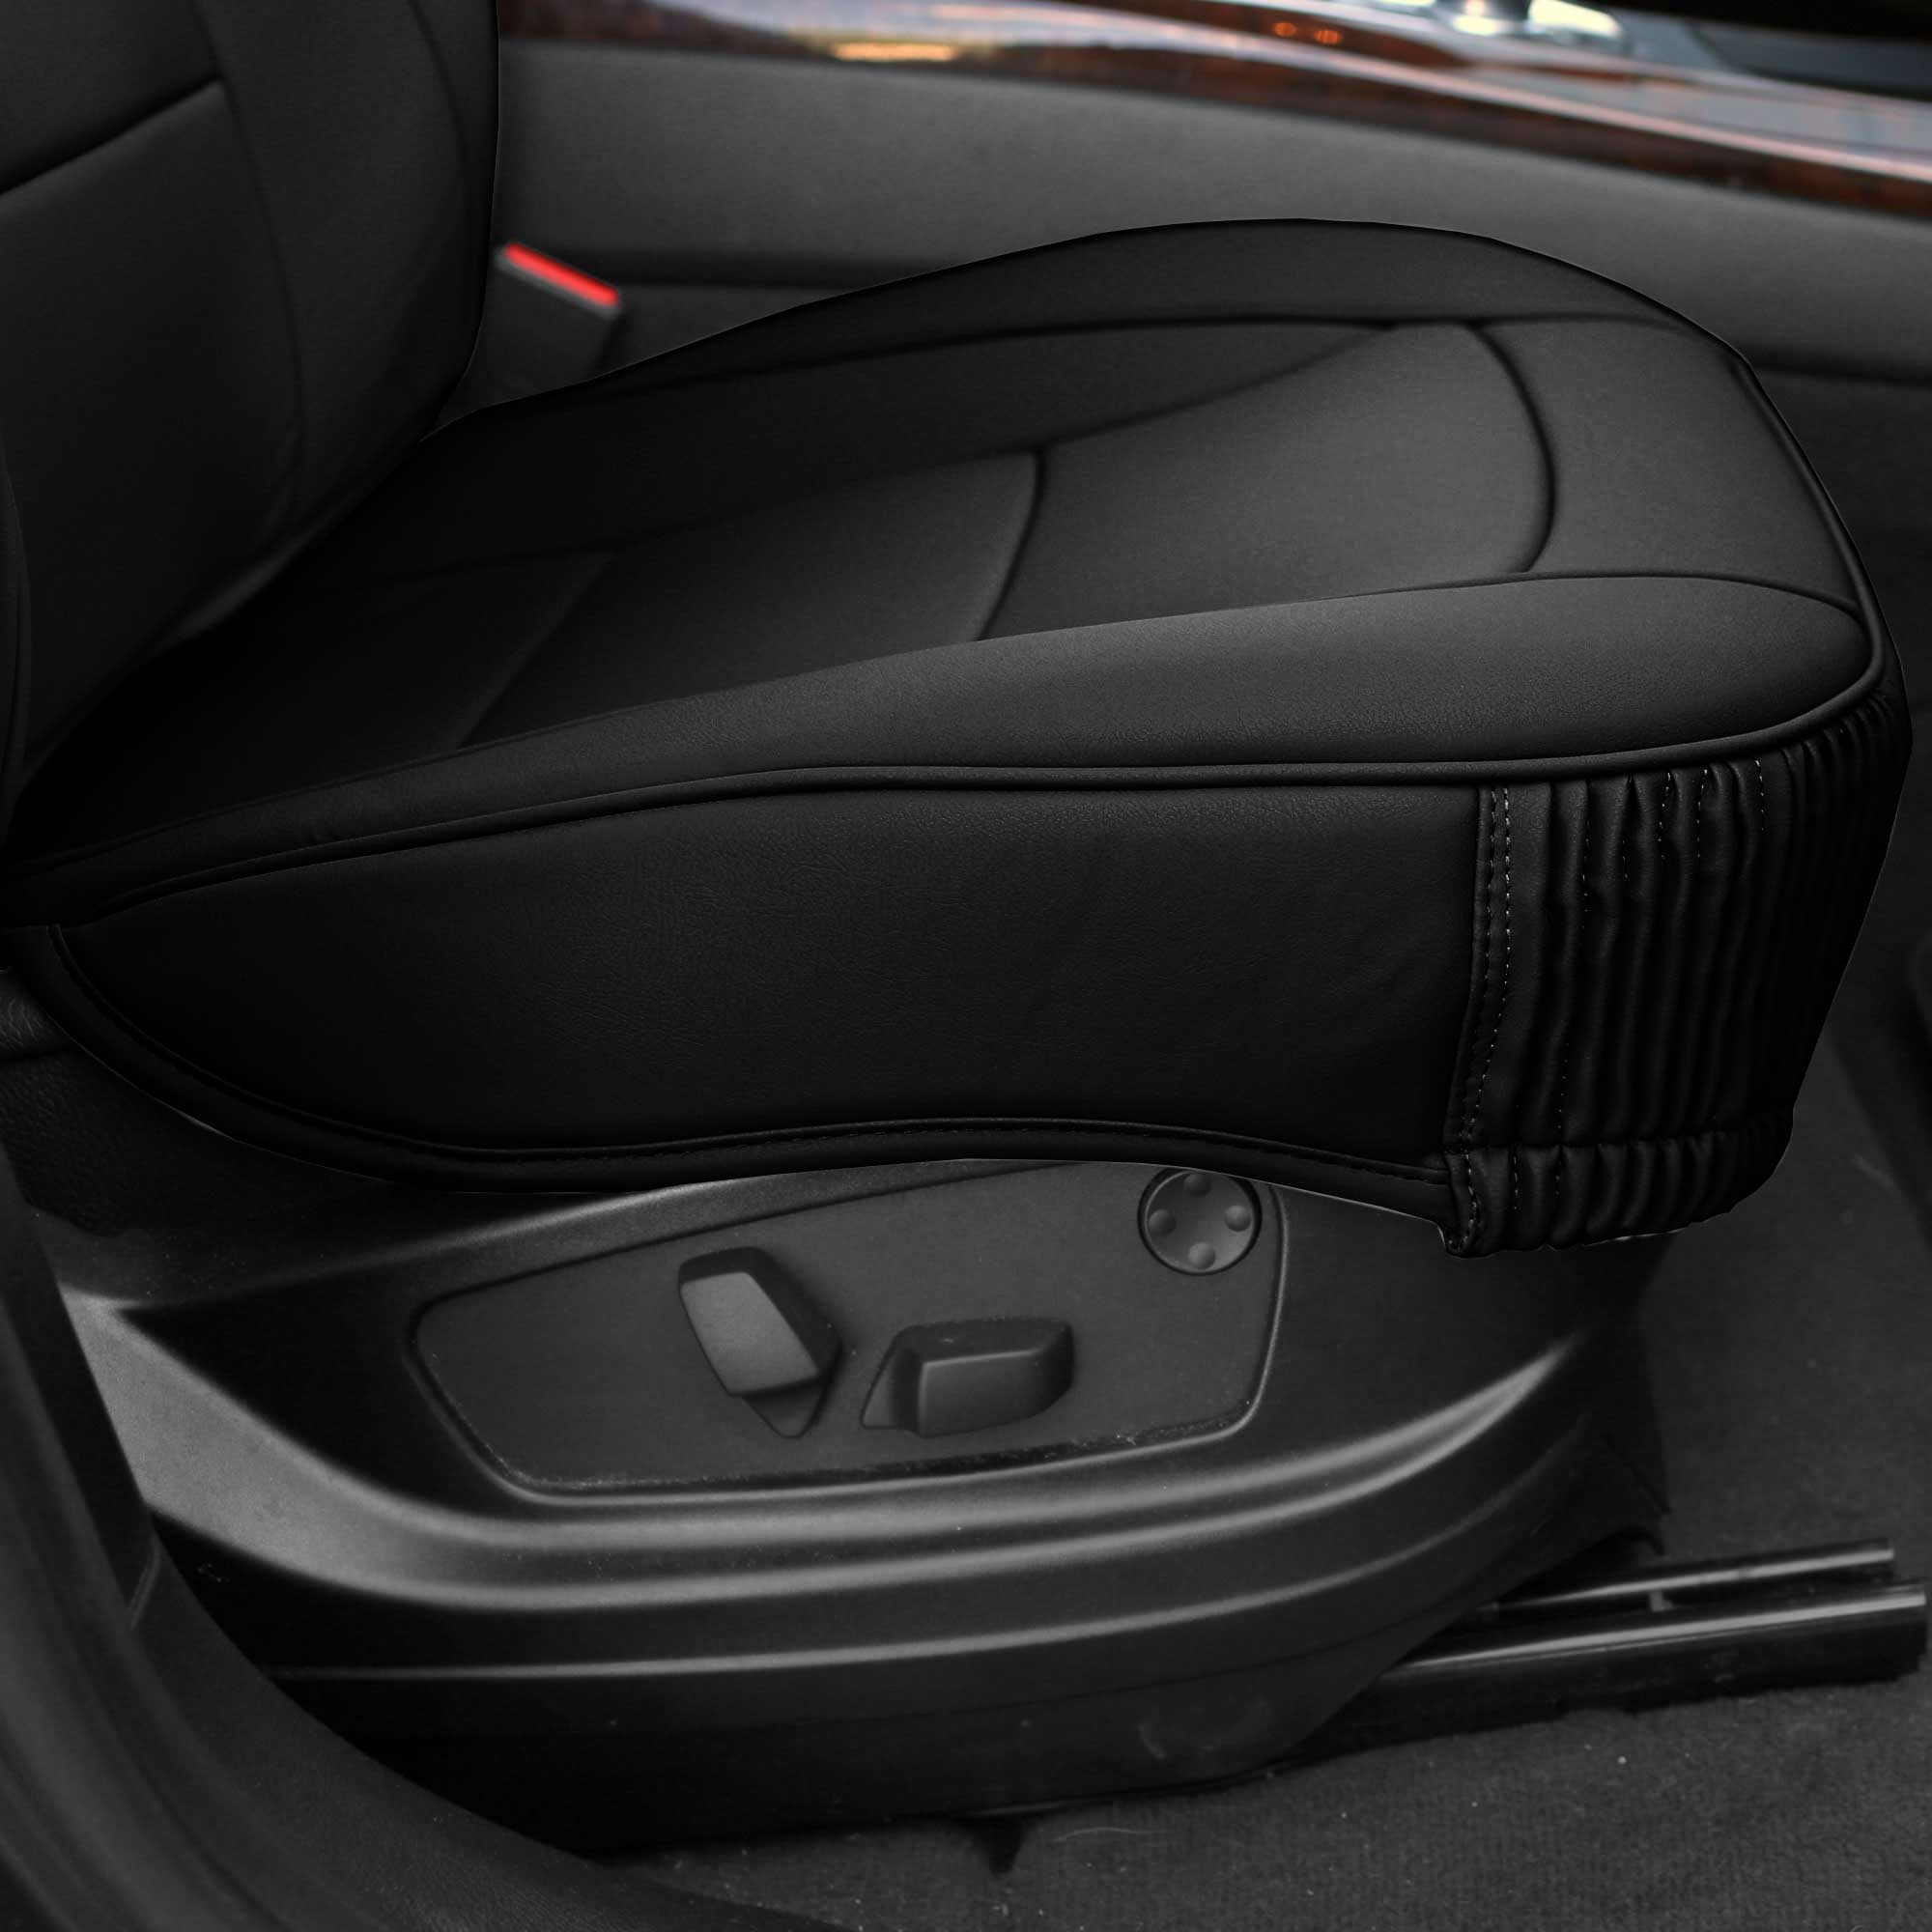 Luxury-Leather-Seat-Cushion-Covers-Front-Bucket-Pair-11-Color-Options thumbnail 9